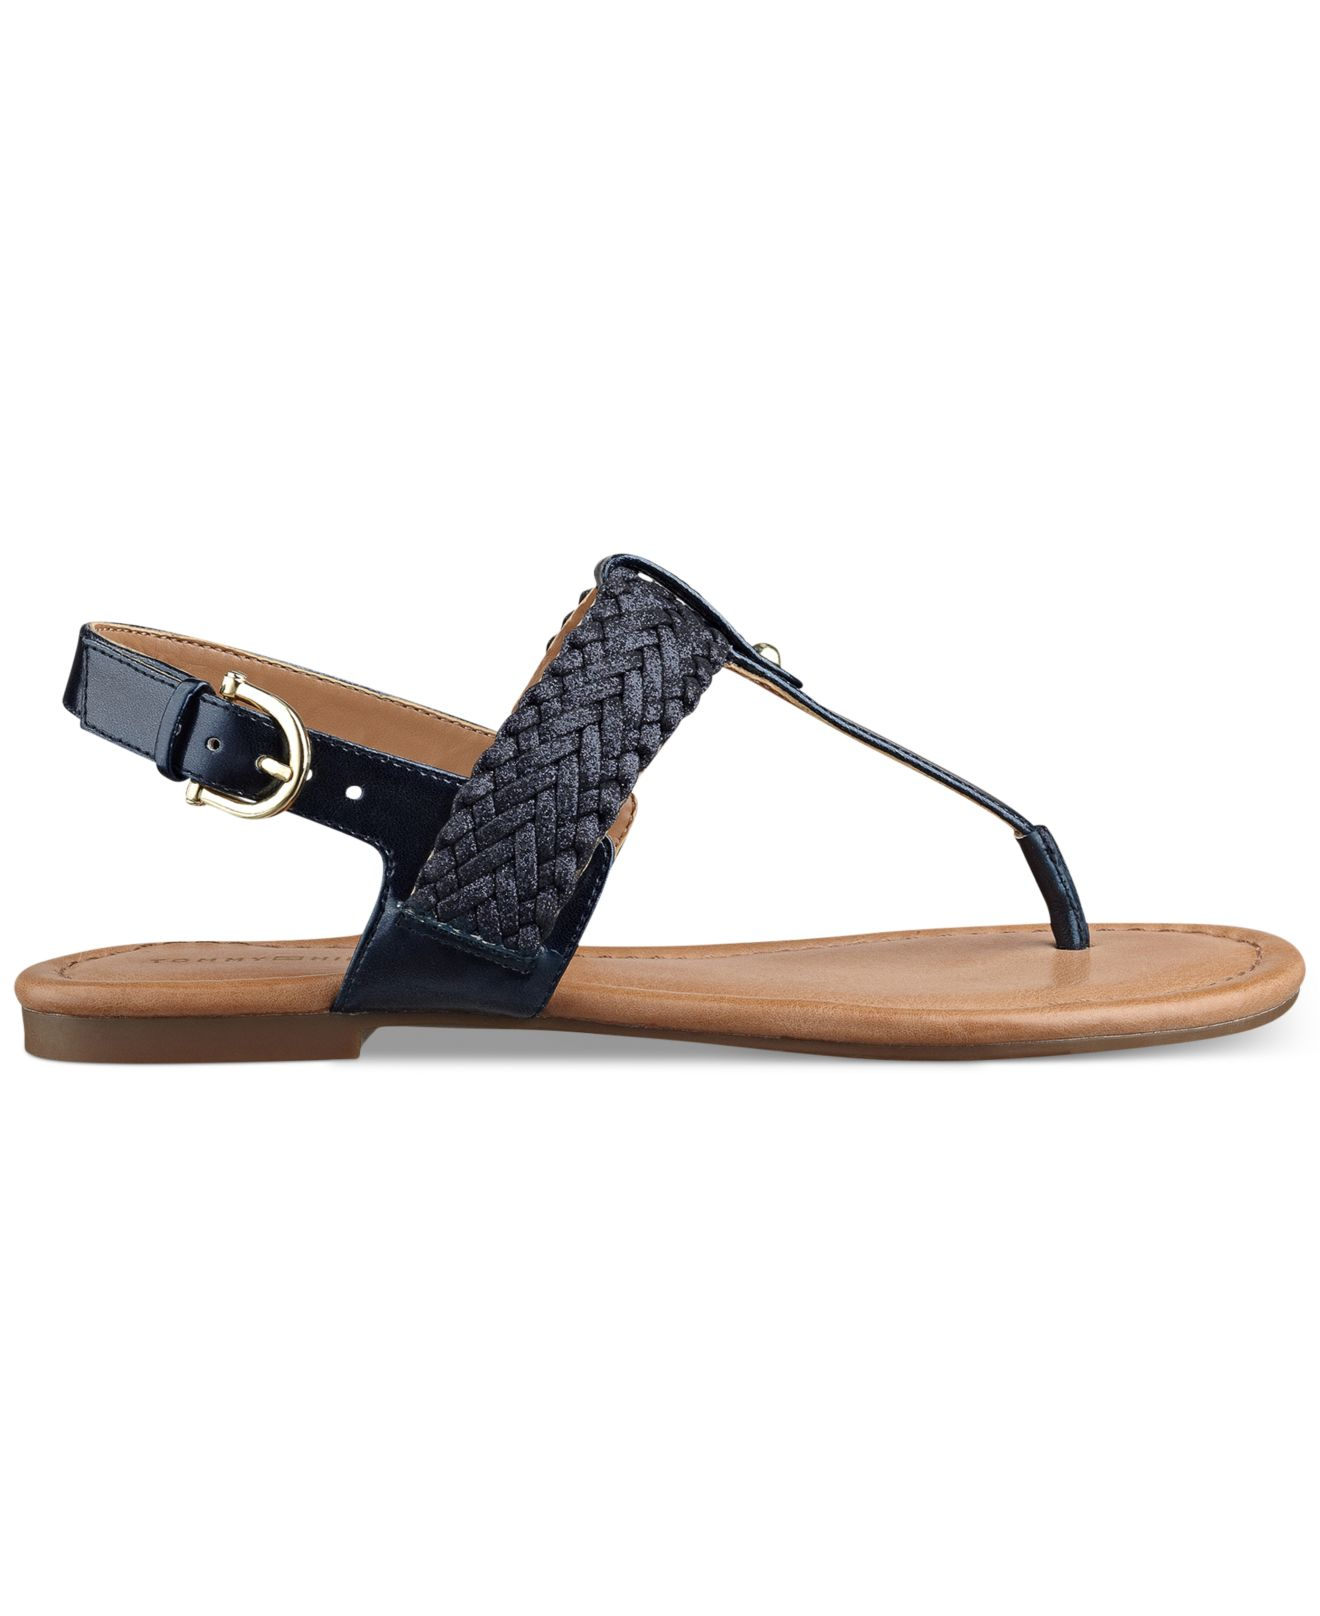 c62ade1d254 Lyst tommy hilfiger womens saycn flat thong sandals in blue jpg 1320x1616  Navy blue womens sandals